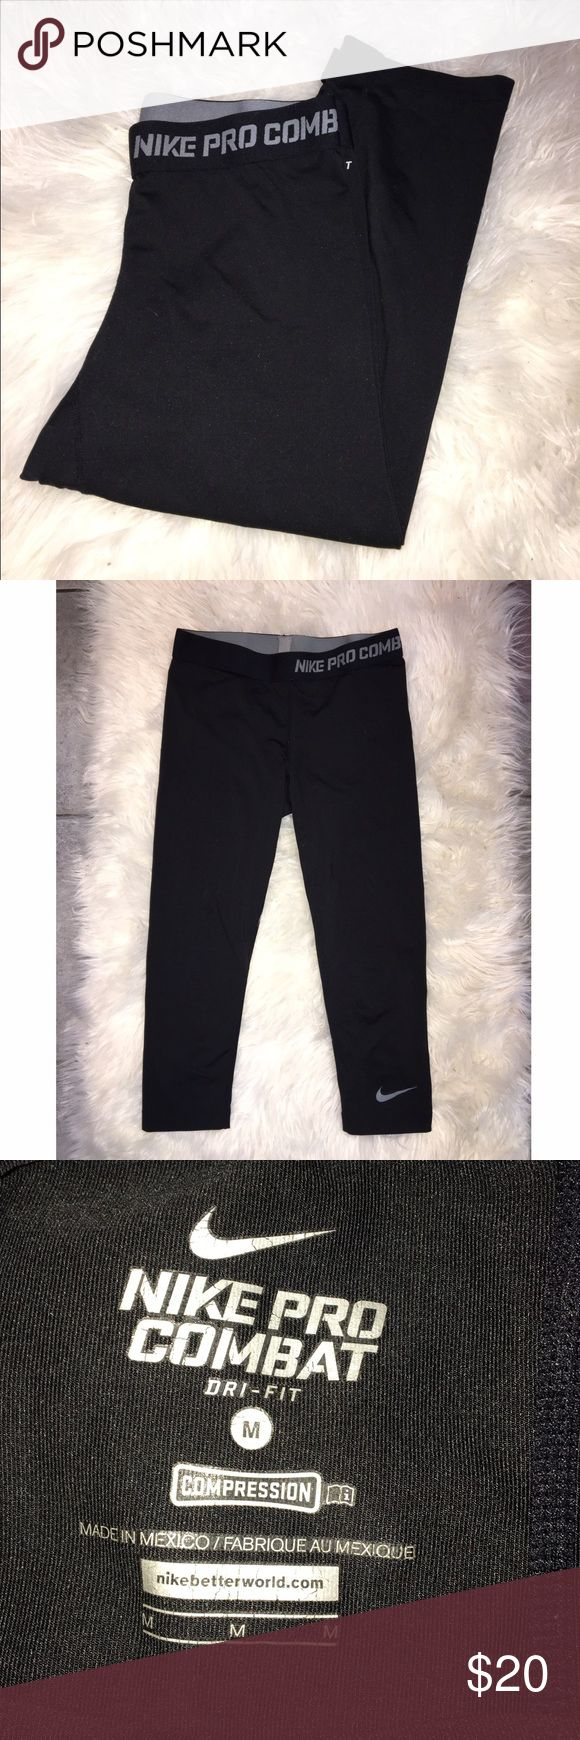 Nike Pro Combat capris In great condition! Worn only 2-3 times. These fit about mid calf! Nike Pants Leggings